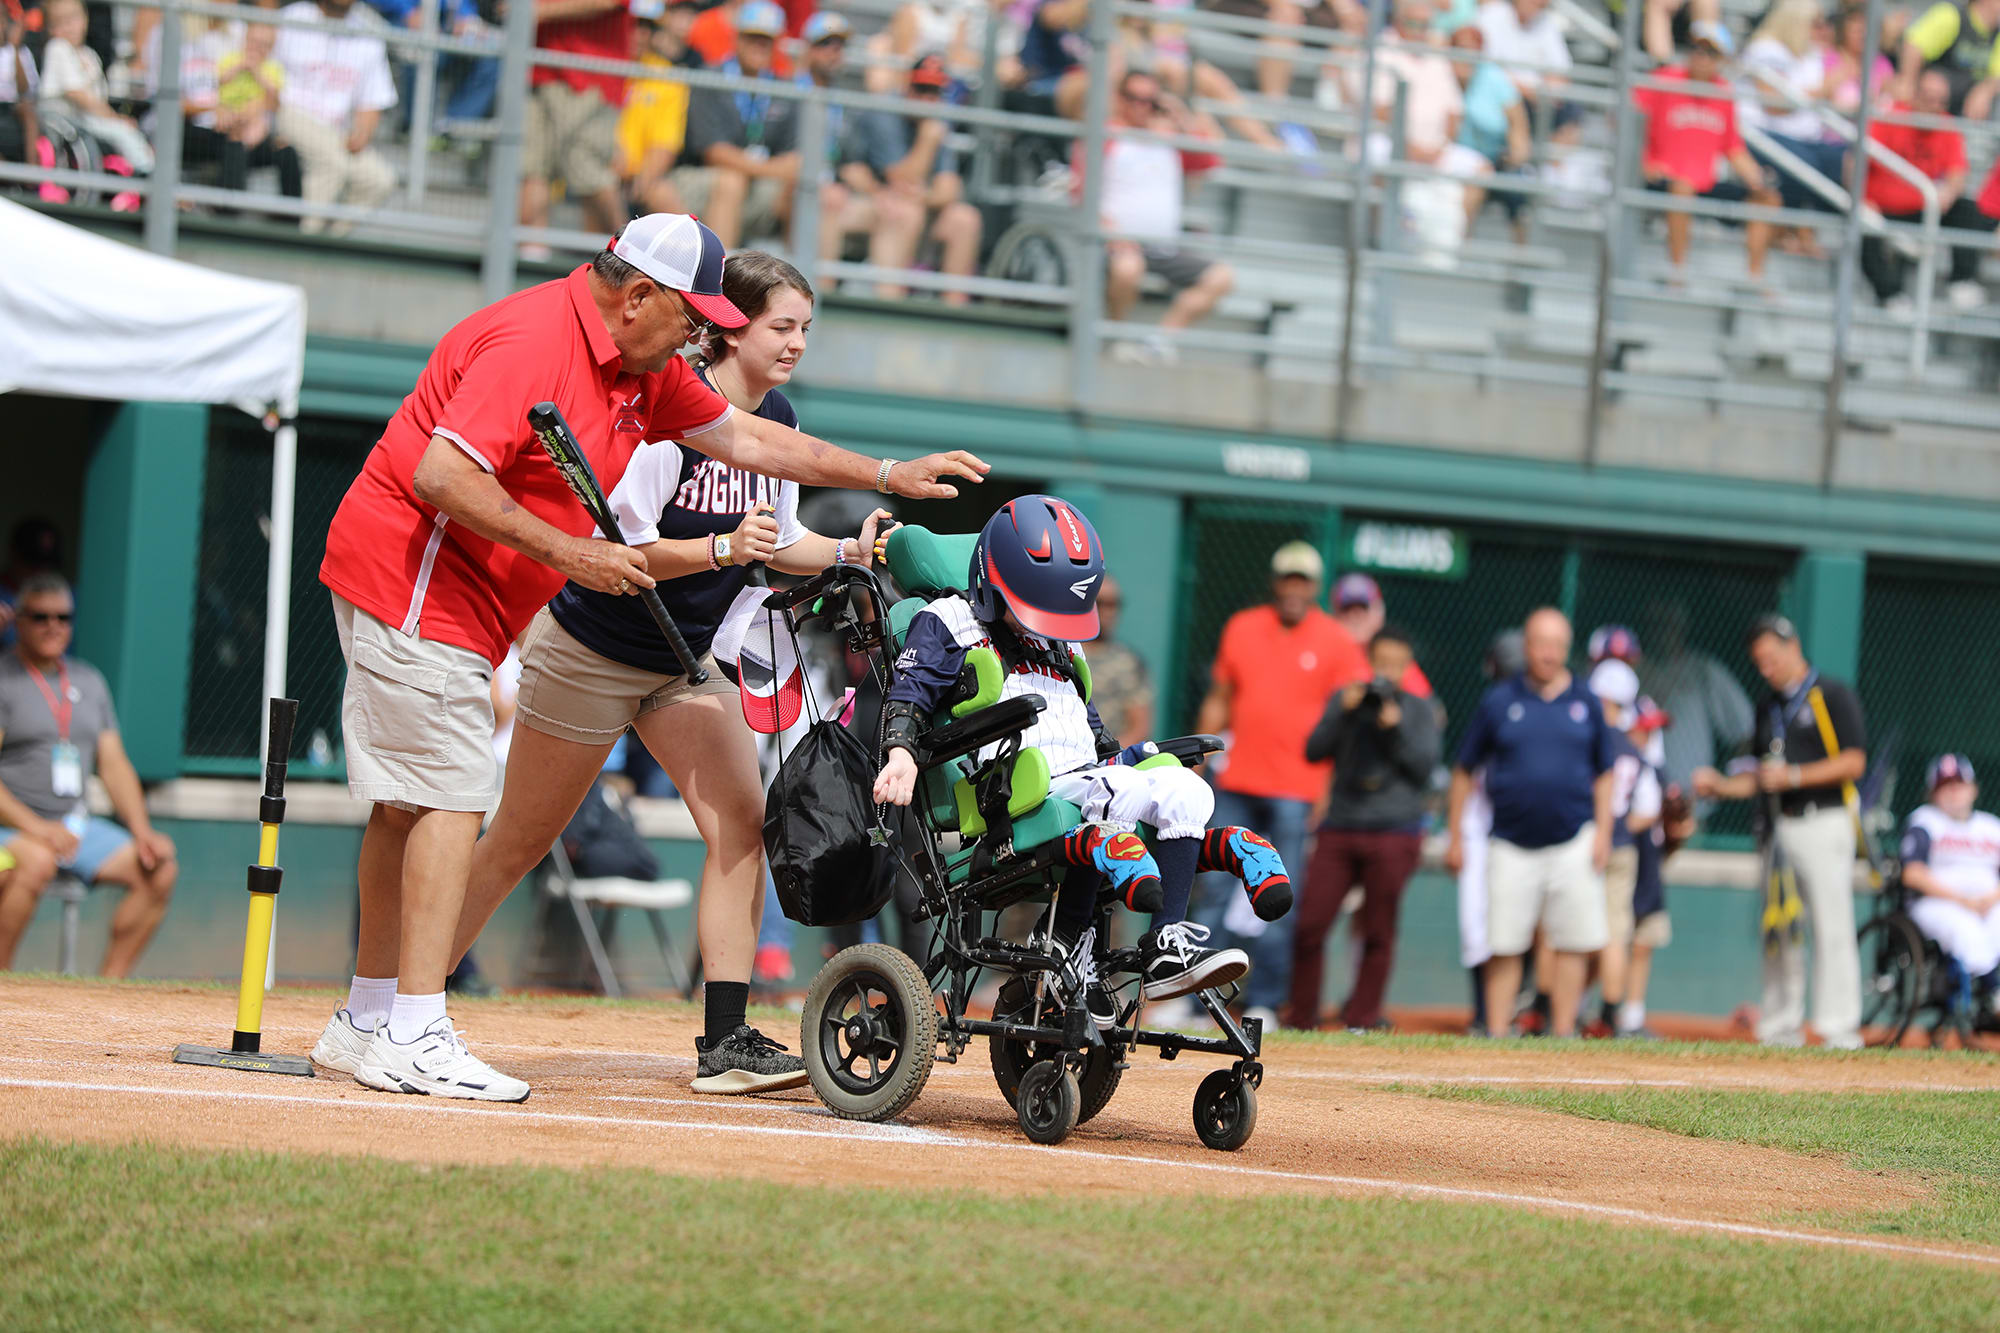 challenger game - buddy pushing player in wheelchair